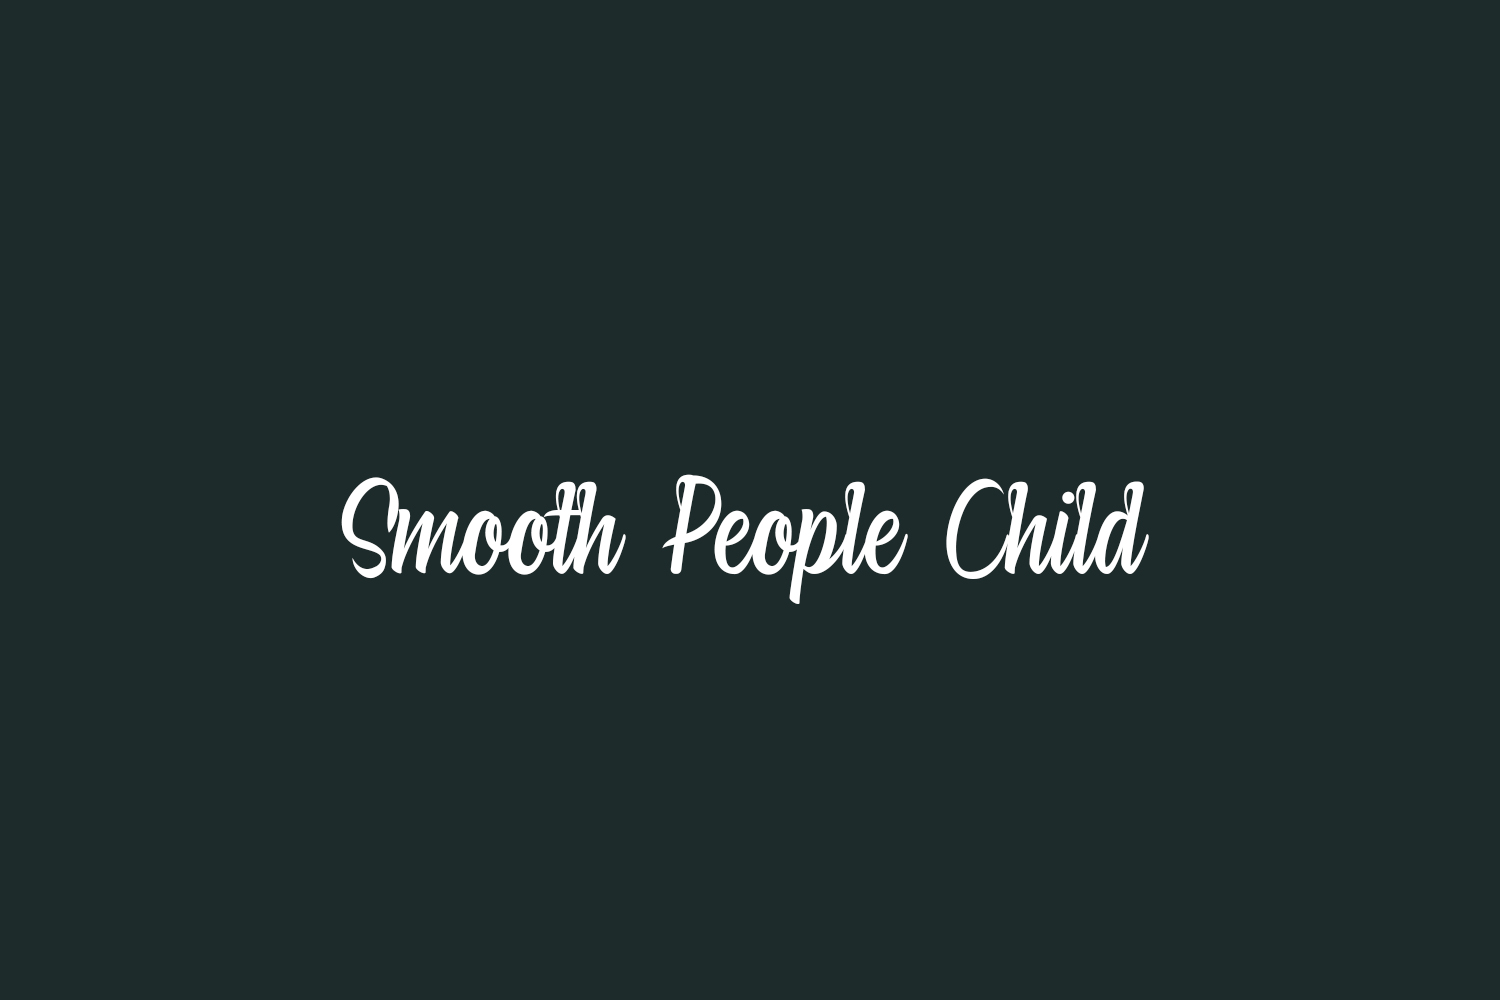 Smooth People Child Free Font